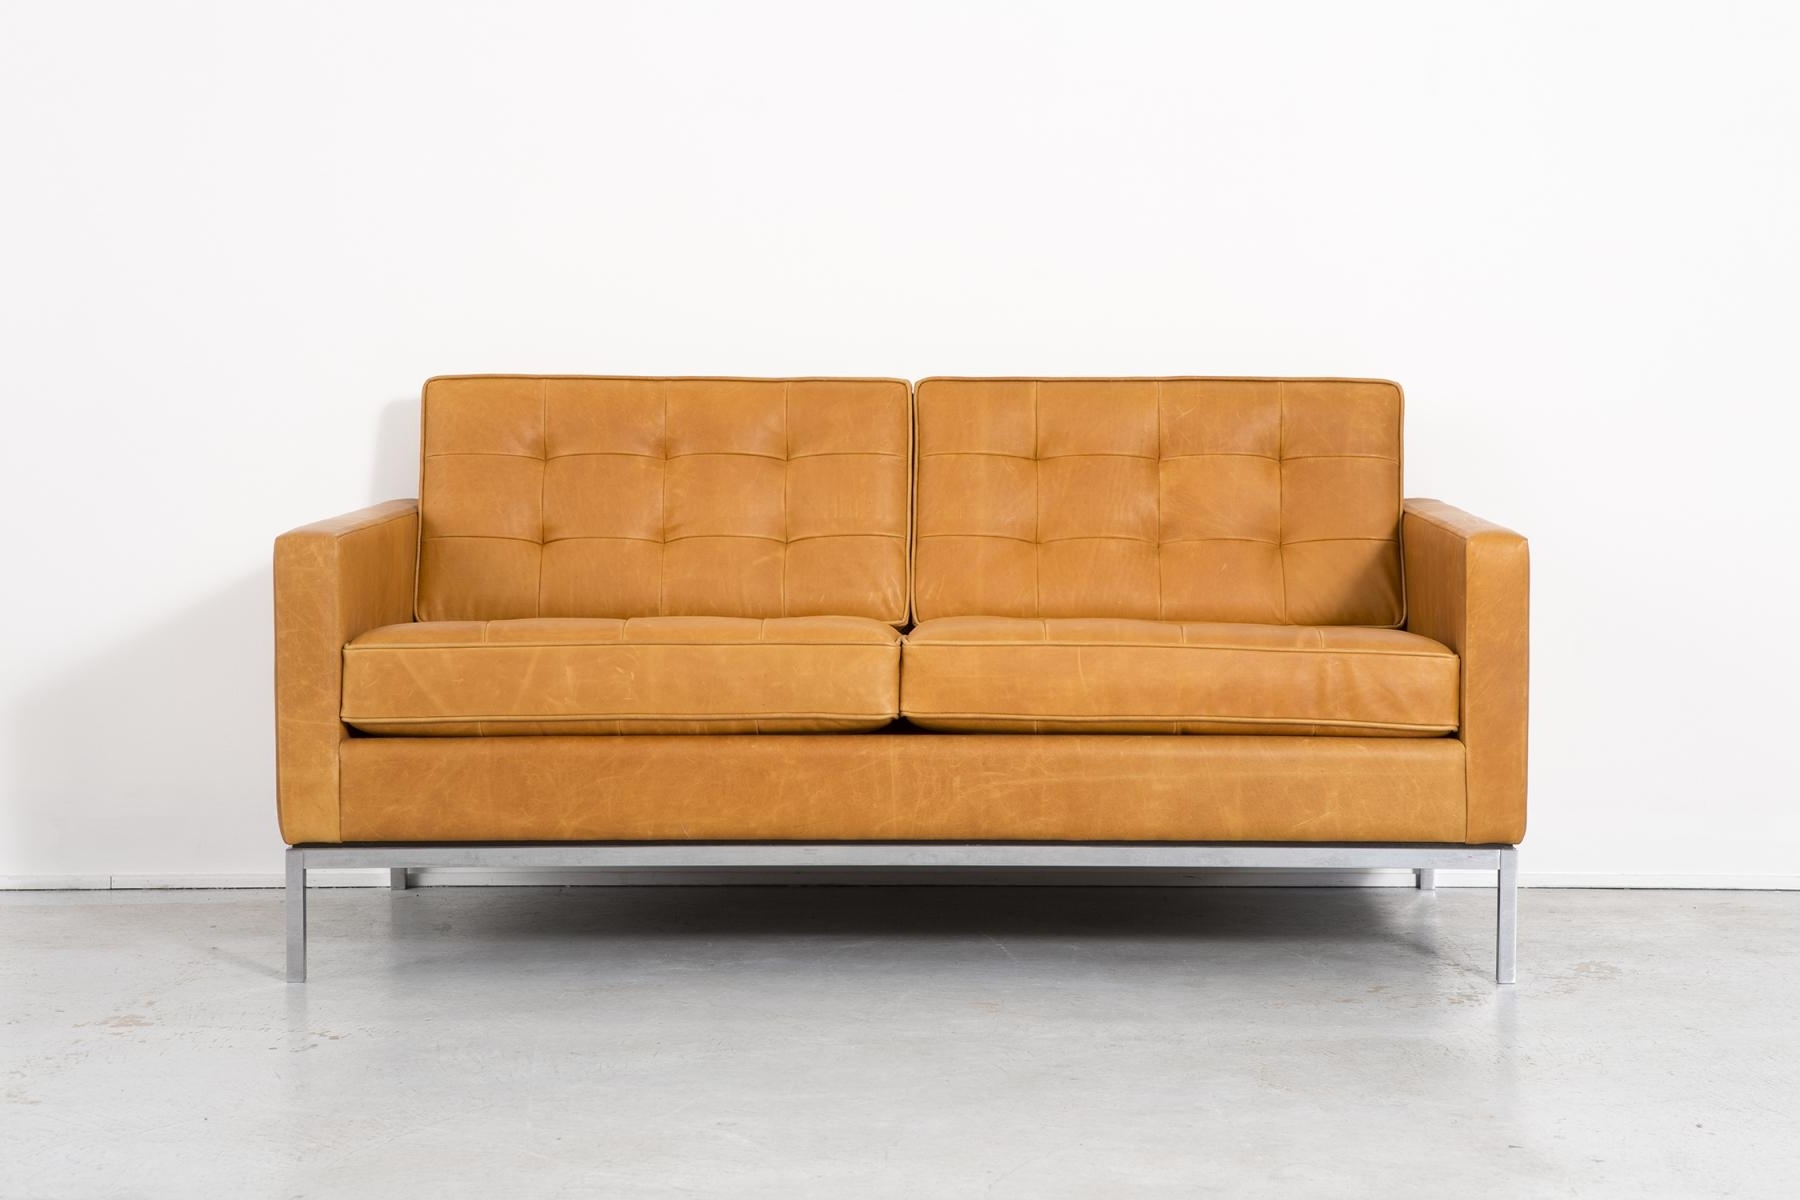 Fashionable Florence Knoll Leather Sofas In Leather Sofaflorence Knoll Bassett For Knoll, 1970S For Sale (View 9 of 15)